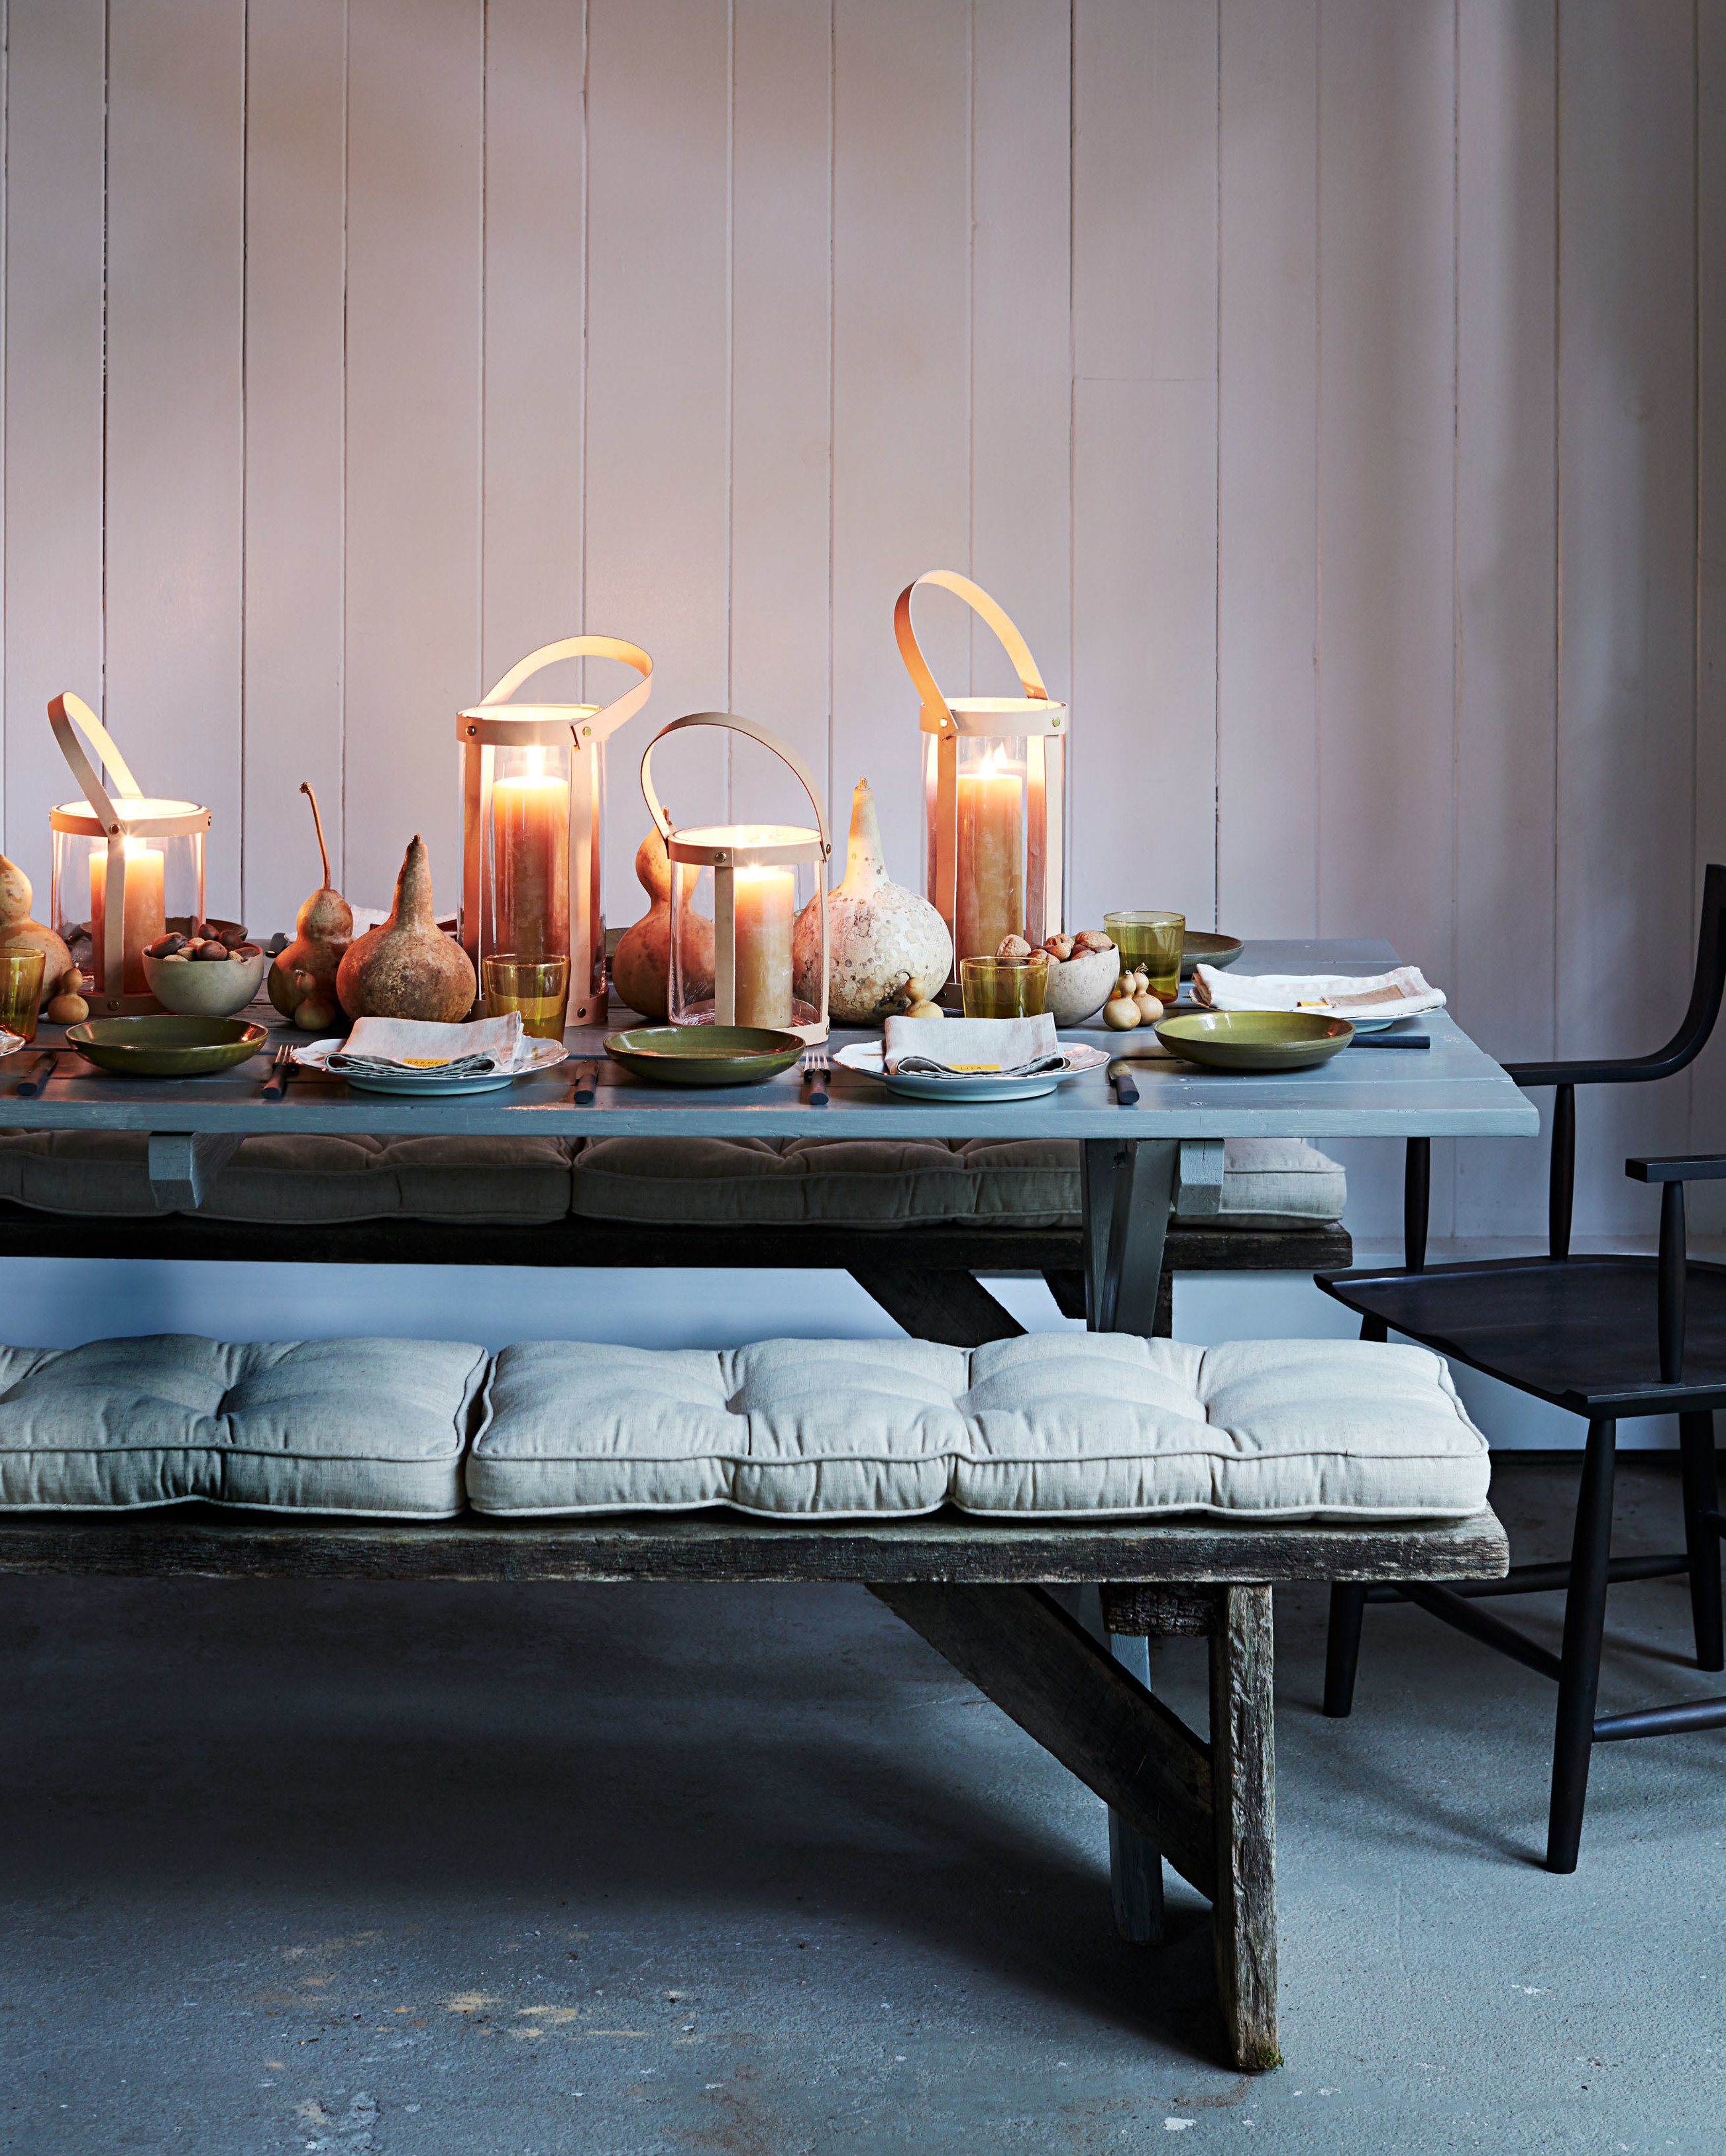 Cozy Rustic Table Setting